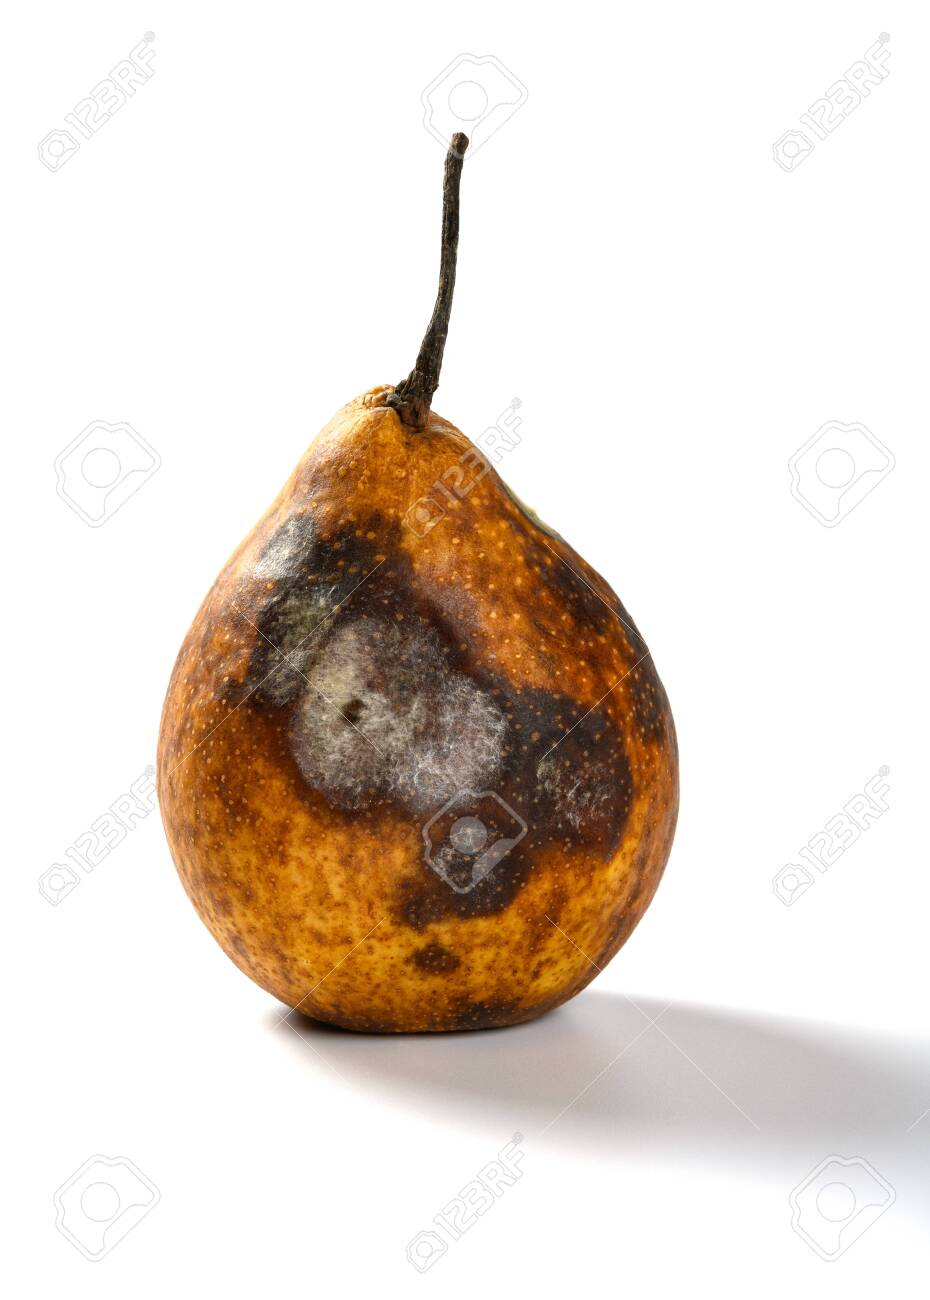 badly overripe pear on a white background - 126858261